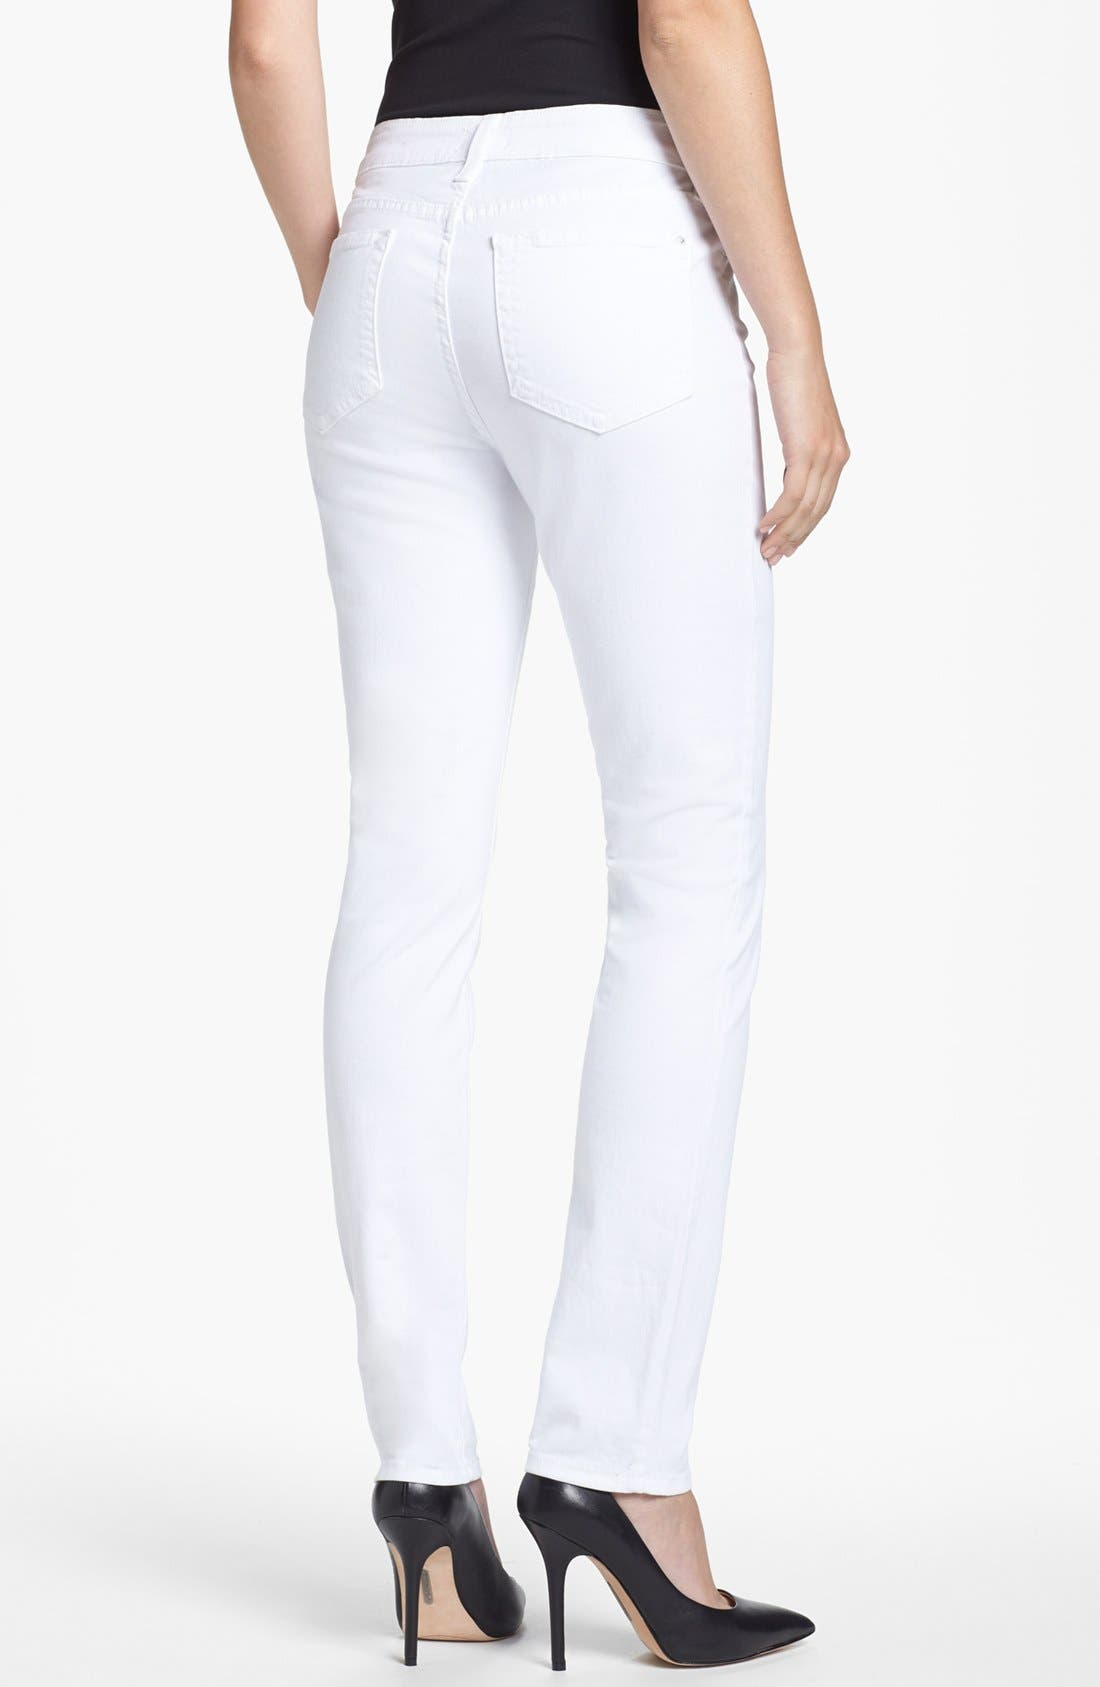 Alternate Image 3  - NYDJ 'Jade' Colored Stretch Skinny Jeans